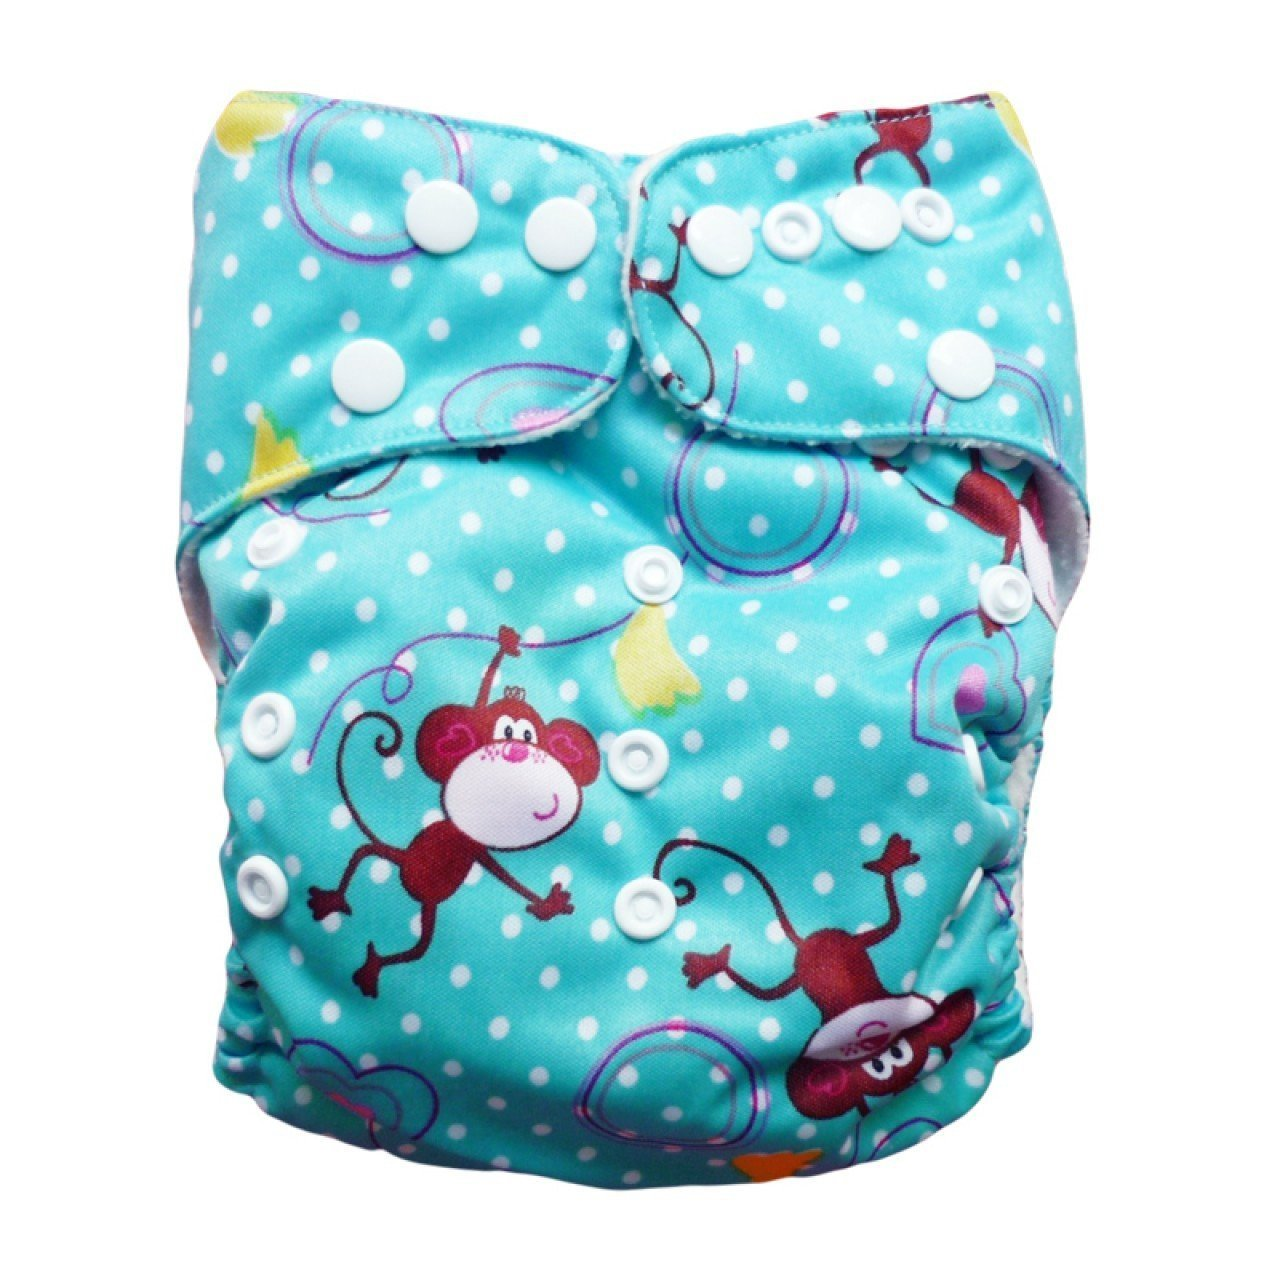 Express the Best Cloth Re-usable Nappy Pack - Cheeky Monkey - Naked Baby Eco Boutique